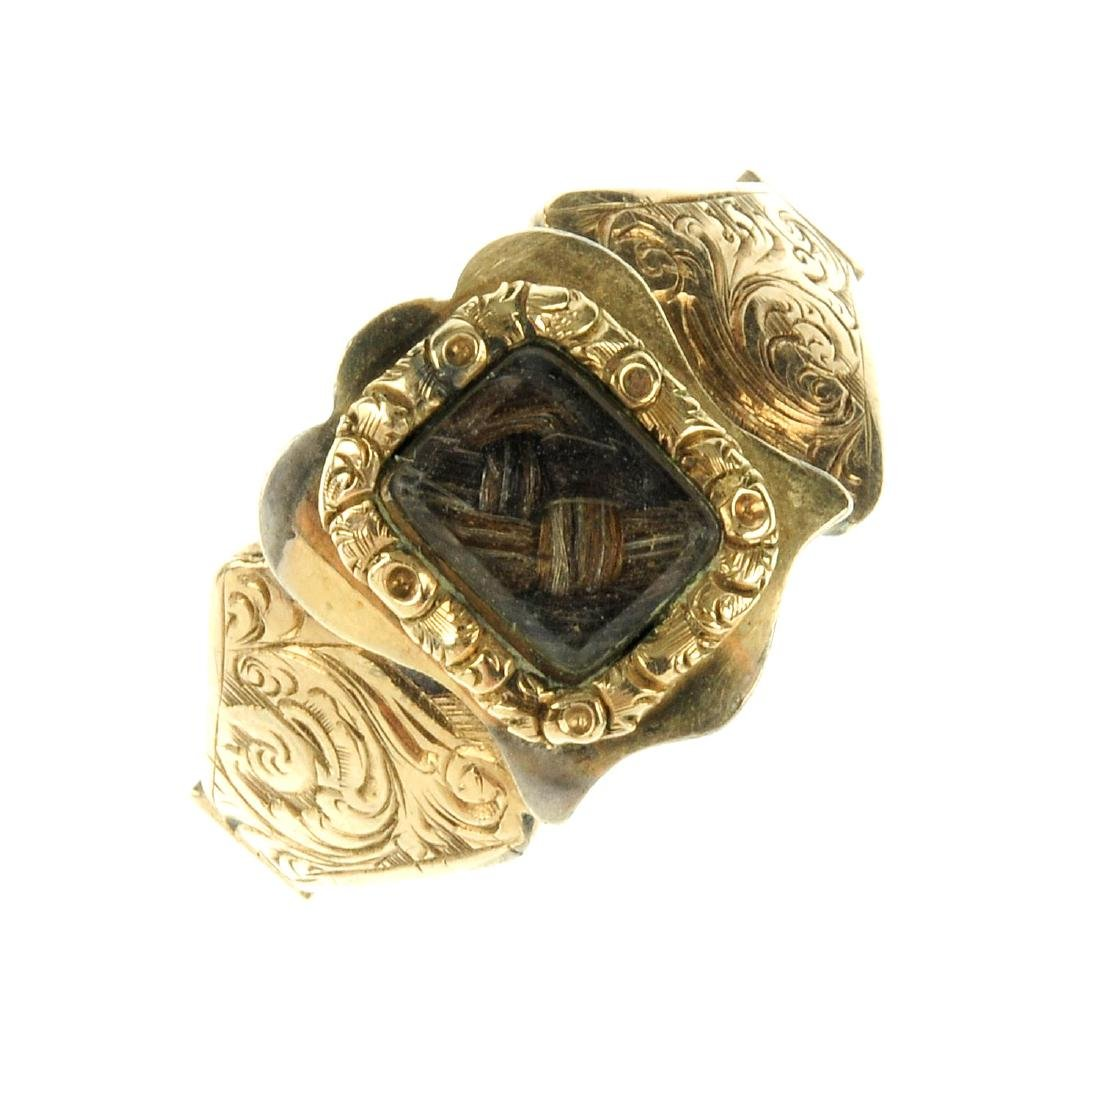 A mid Victorian memorial ring. The rectangular glazed